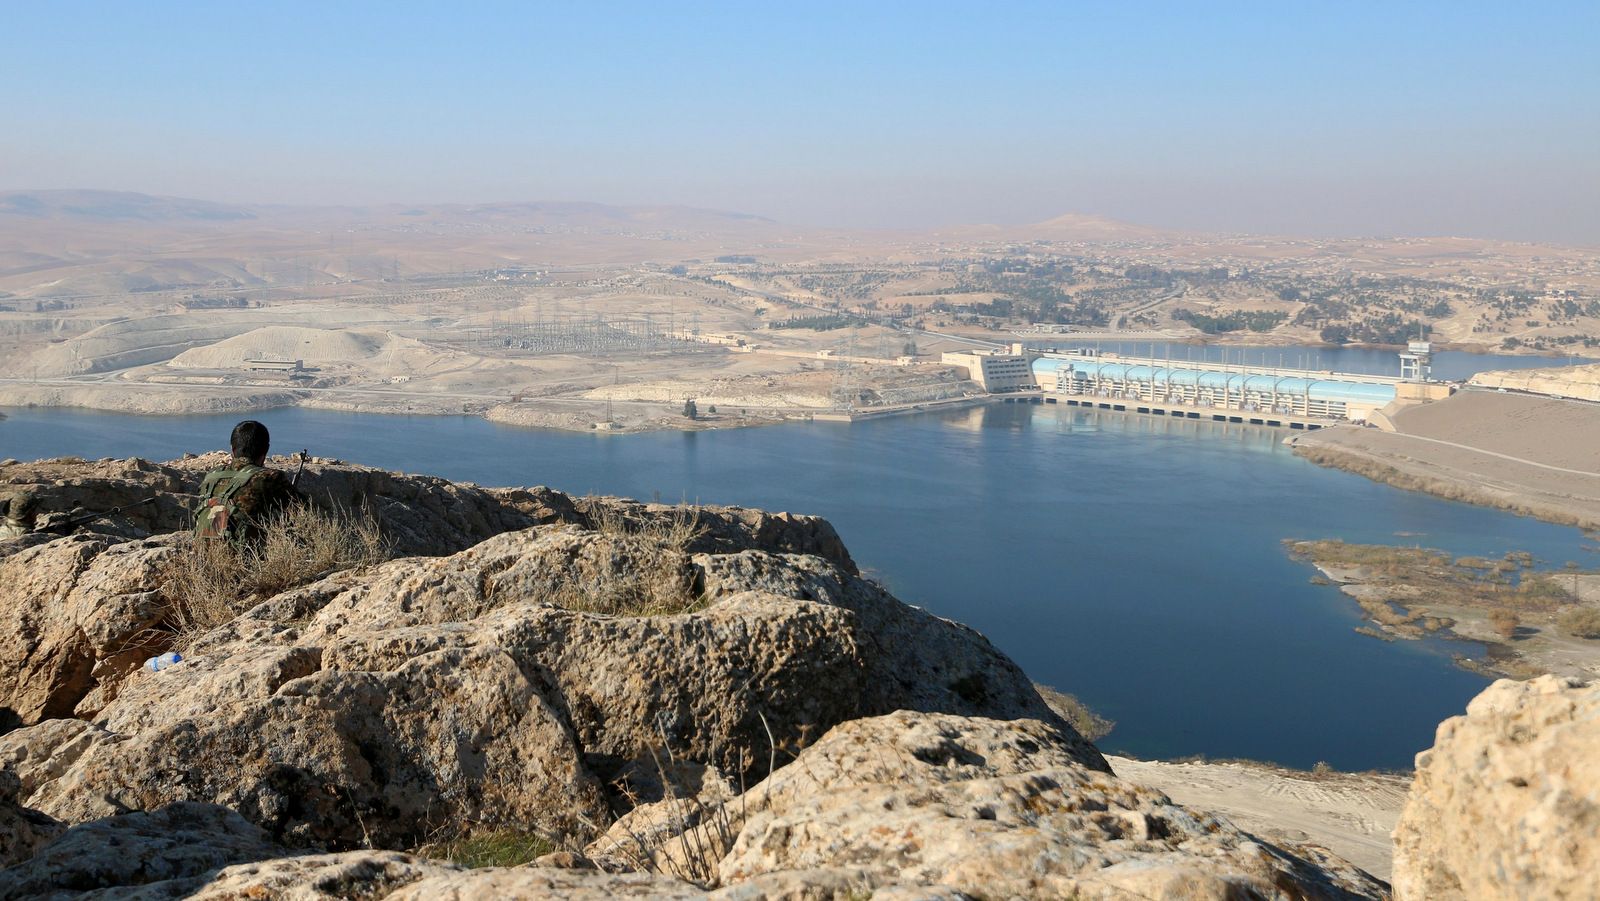 Kurdish Fighters take positions at the top of Mount Annan overlooking the Tishrin dam, after they captured from ISISmilitants, south of Kobani, Syria December 27, 2015. (Photo: Rodi Said)